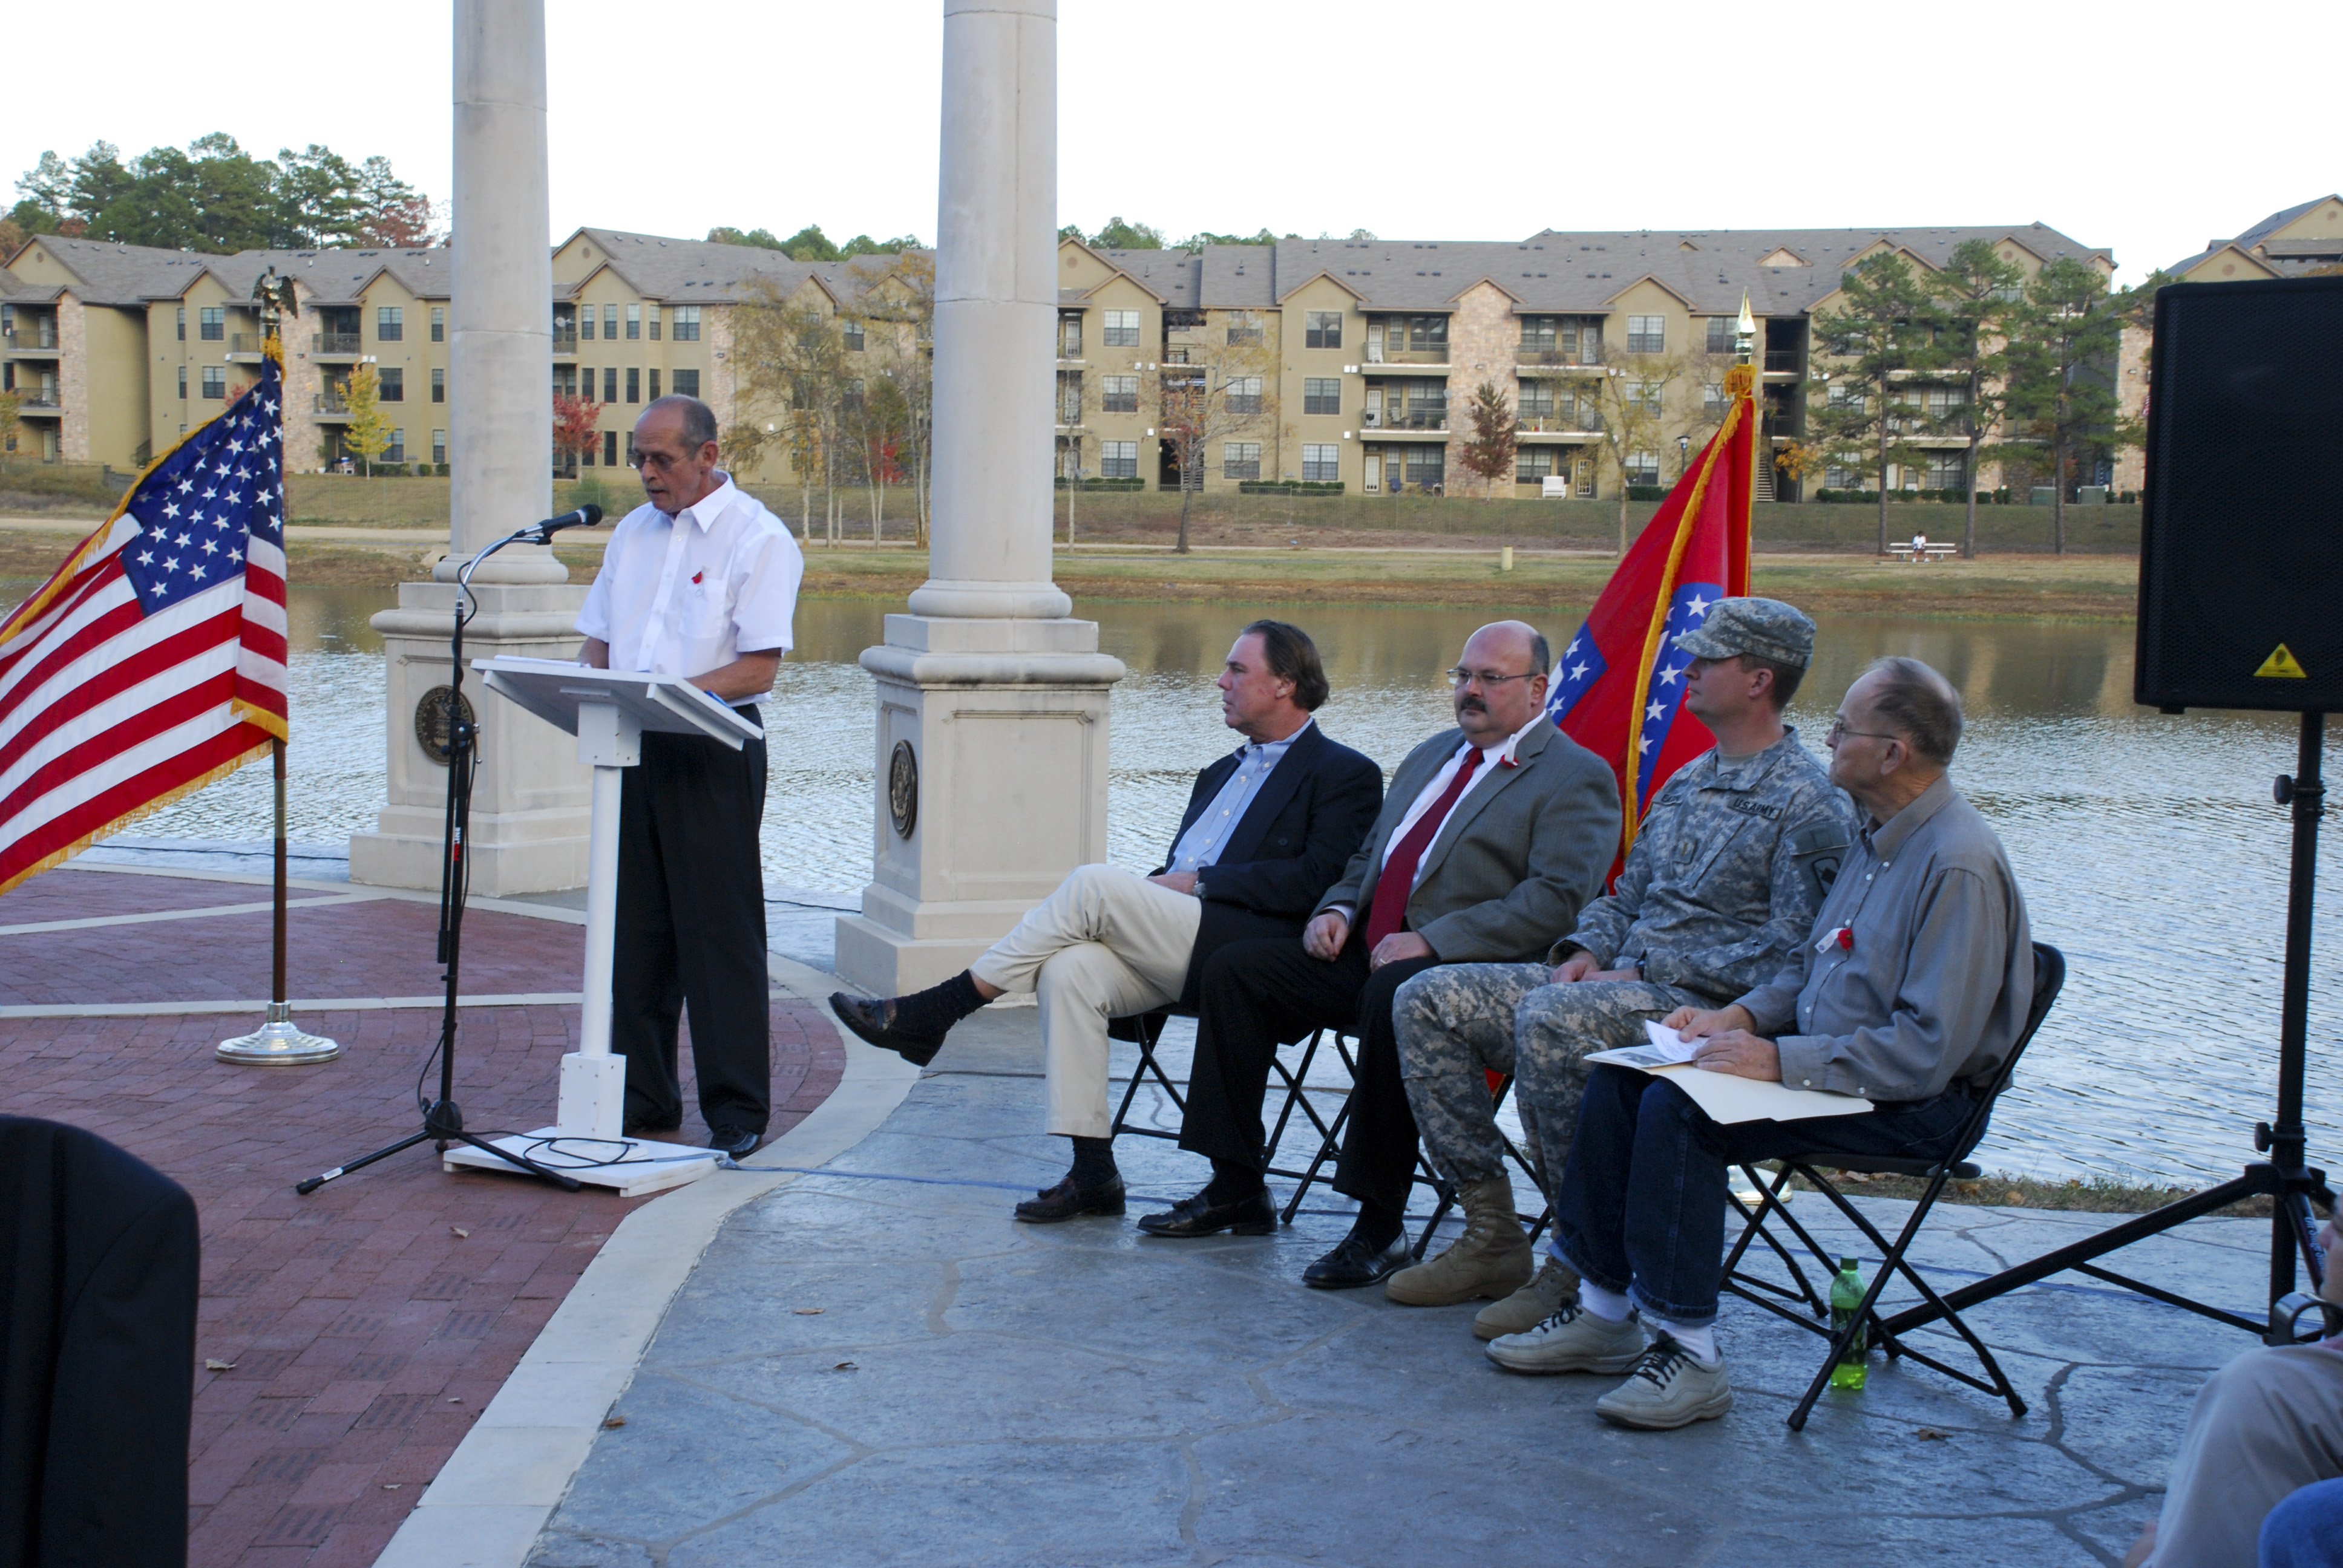 Ken Saunders, standing. Sam Williams, George Glenn, 2nd Lt. Scott Eaton, Dr. Robert Wilson